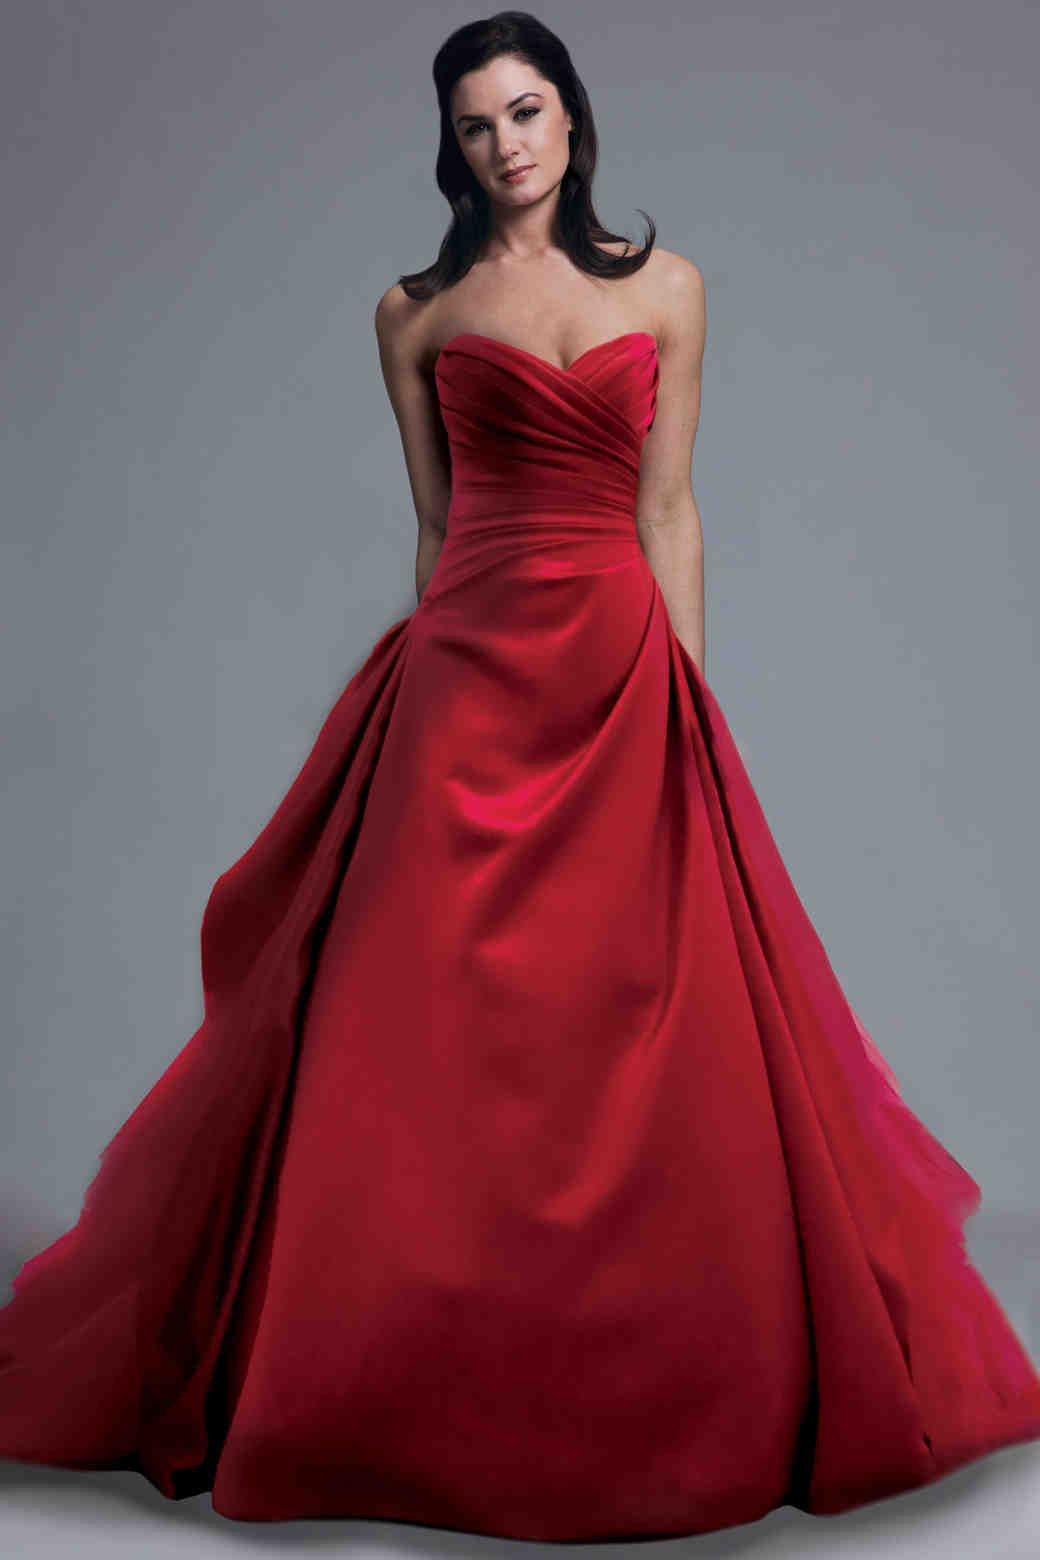 Red wedding dresses spring 2013 bridal fashion week for Red dresses for weddings bridesmaid